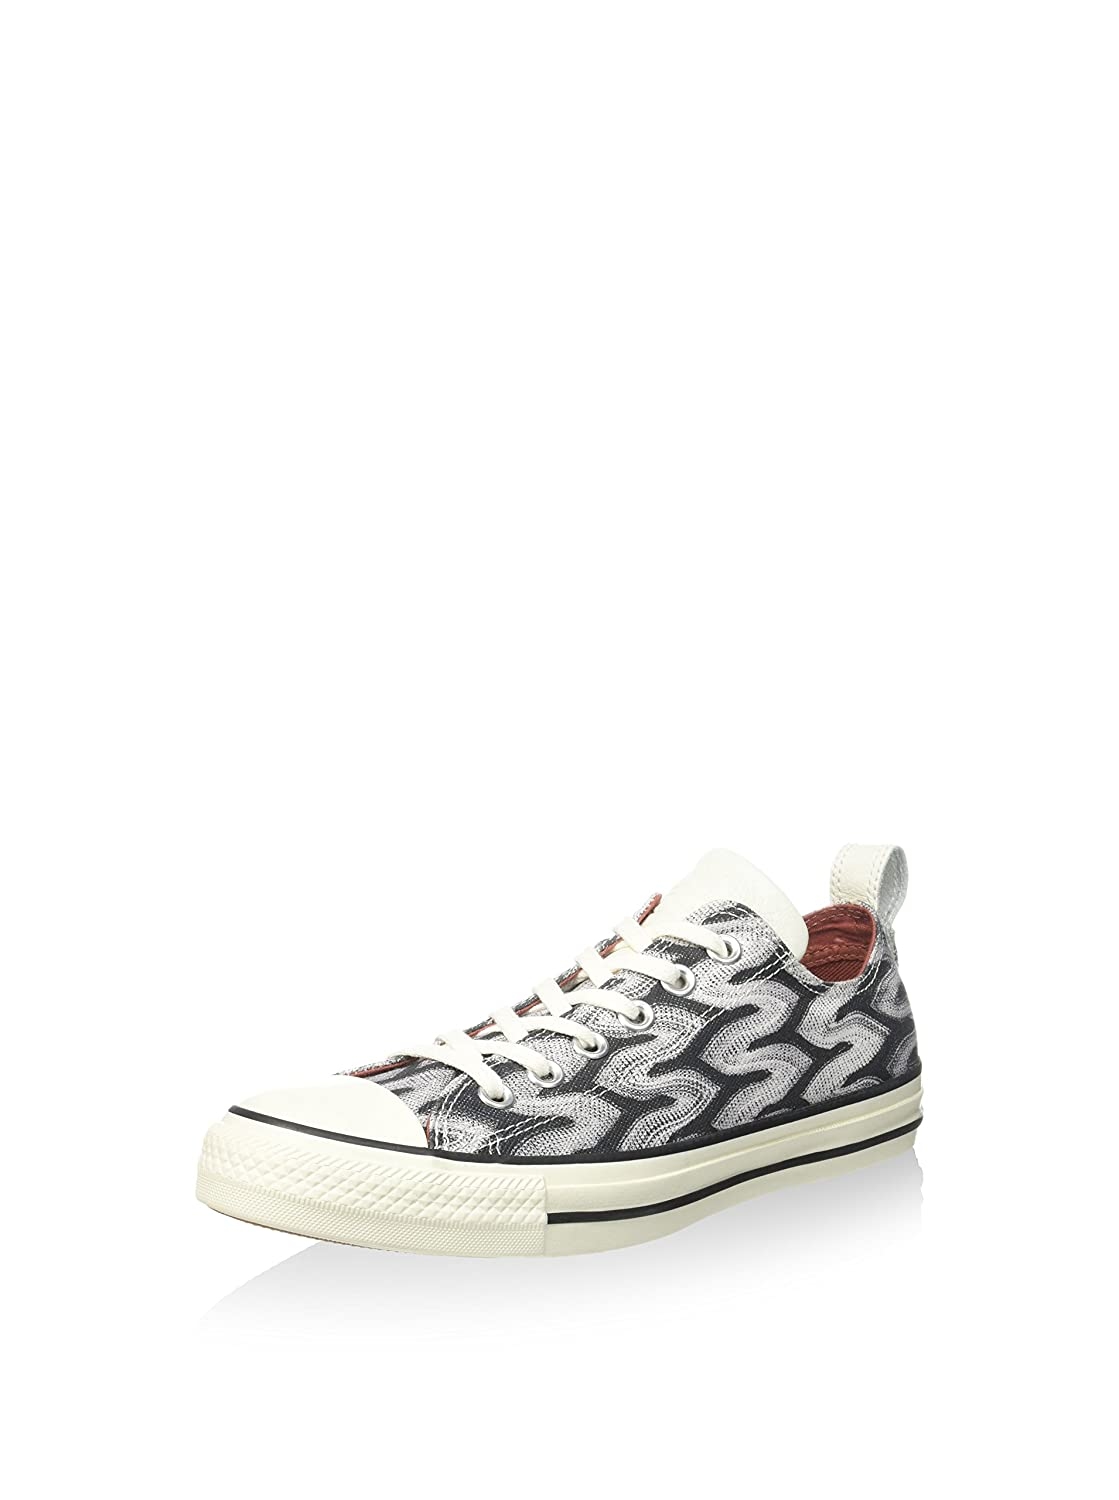 Converse Womens Chuck Taylor All Star Missoni Sneakers